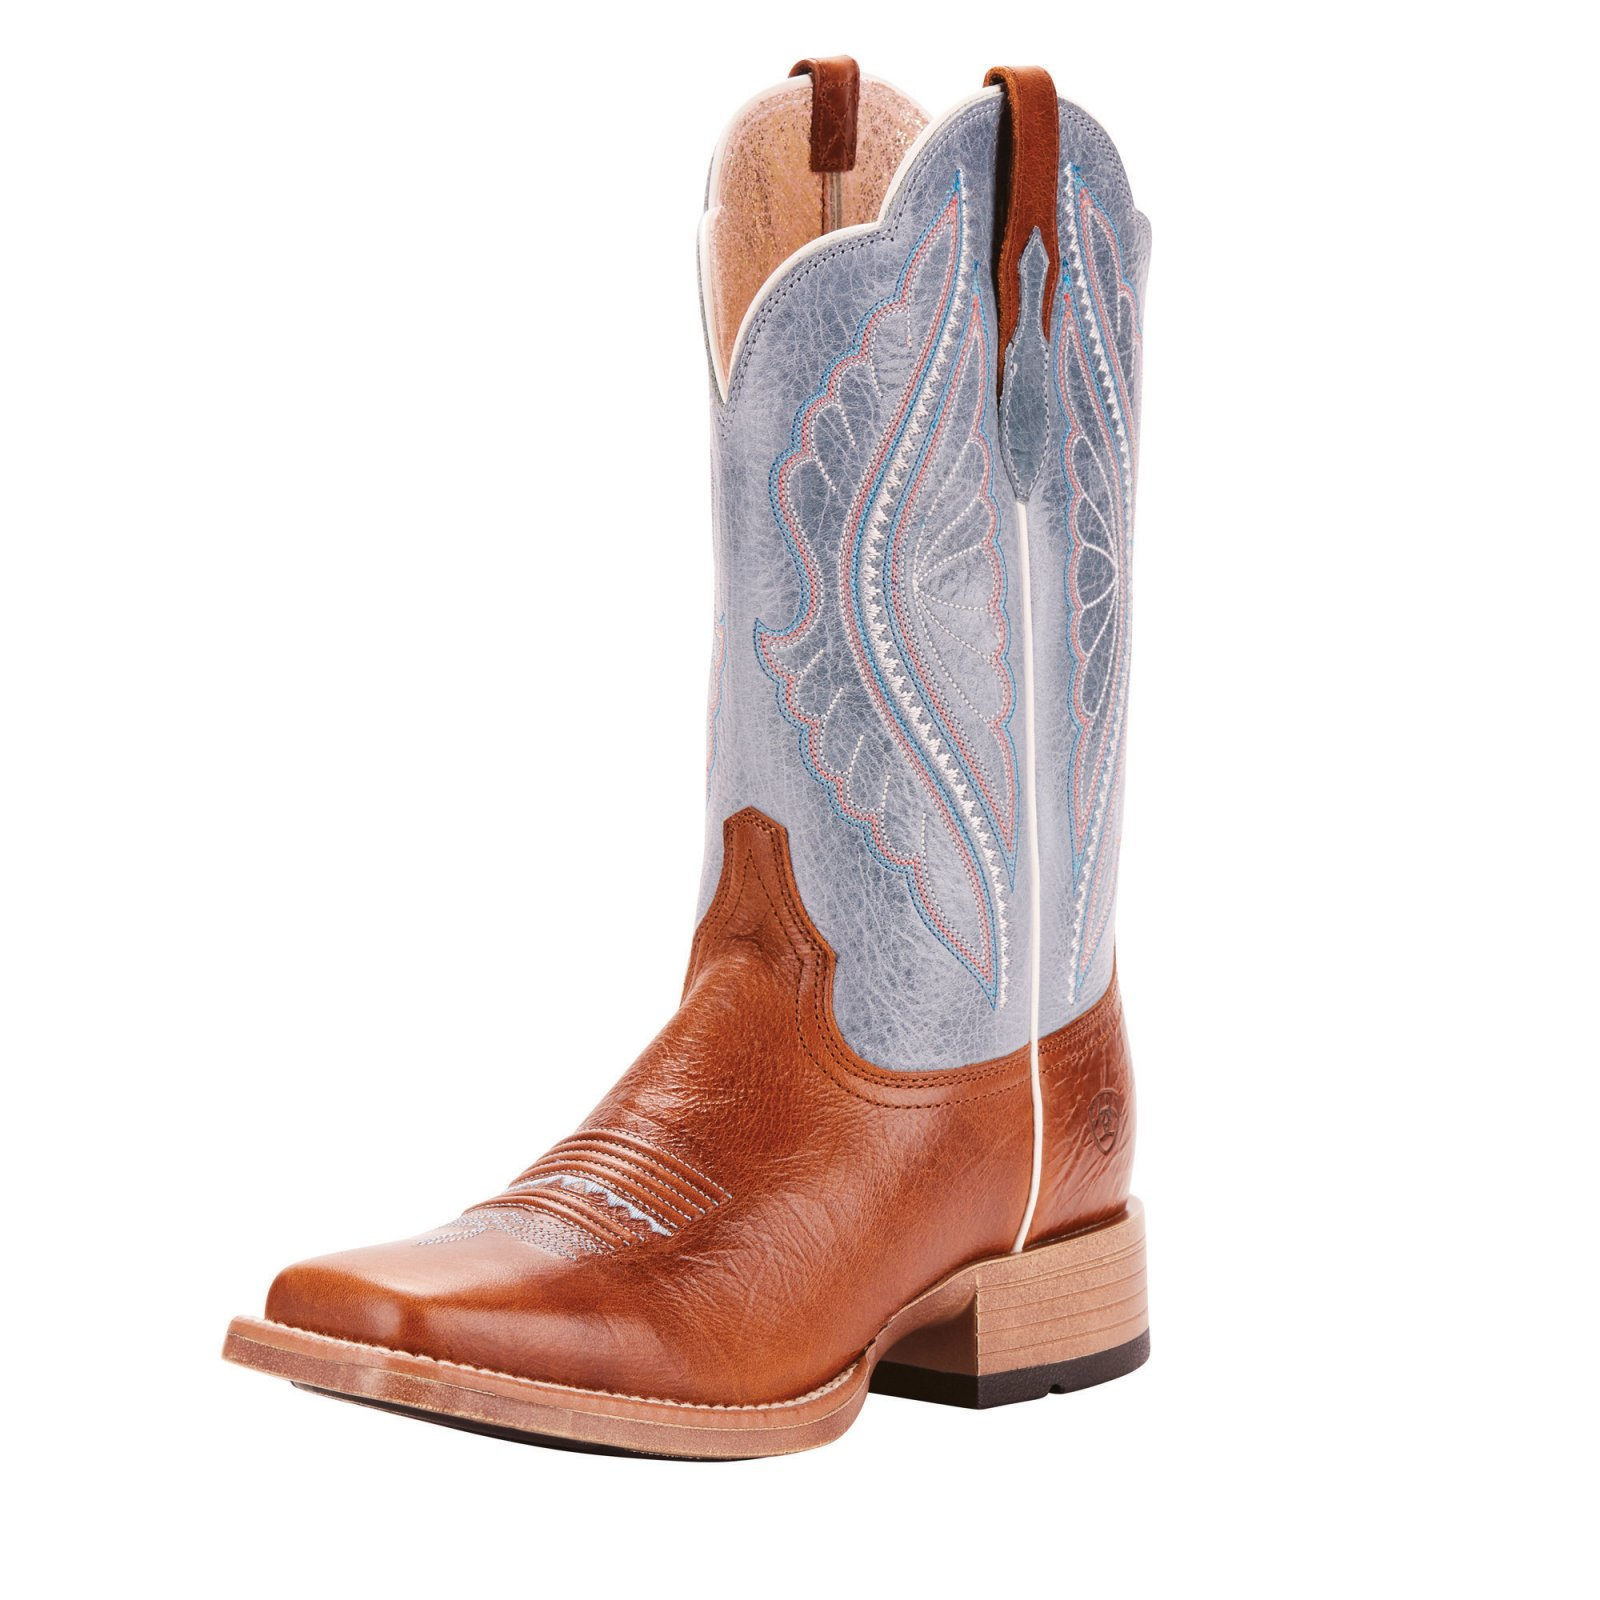 Prime Time Boot from Ariat